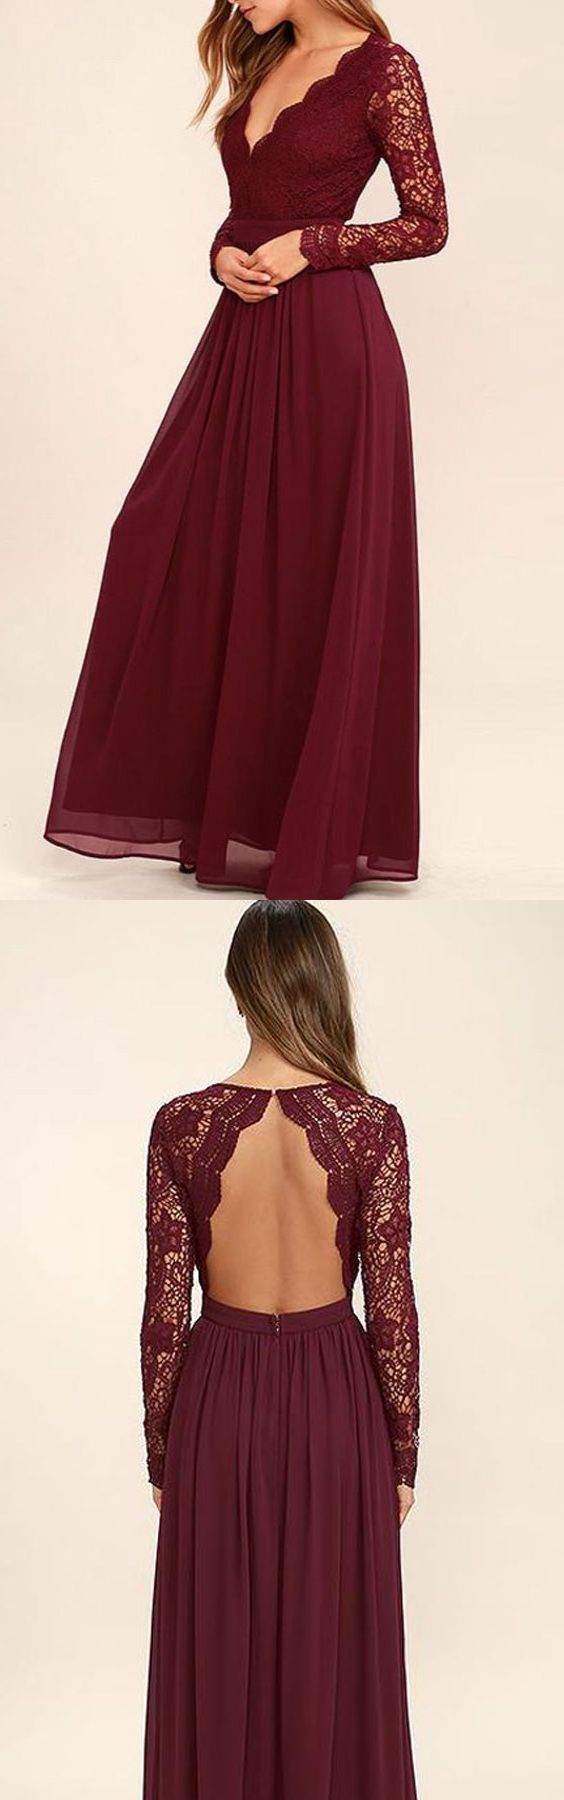 V-neck Long Sleevs Dark Burgundy Lace Chiffon Prom… - Prom shopping is alive and well on Pinterest. Compare prices for this @ Wrhel.com before you commit to buy. #Prom